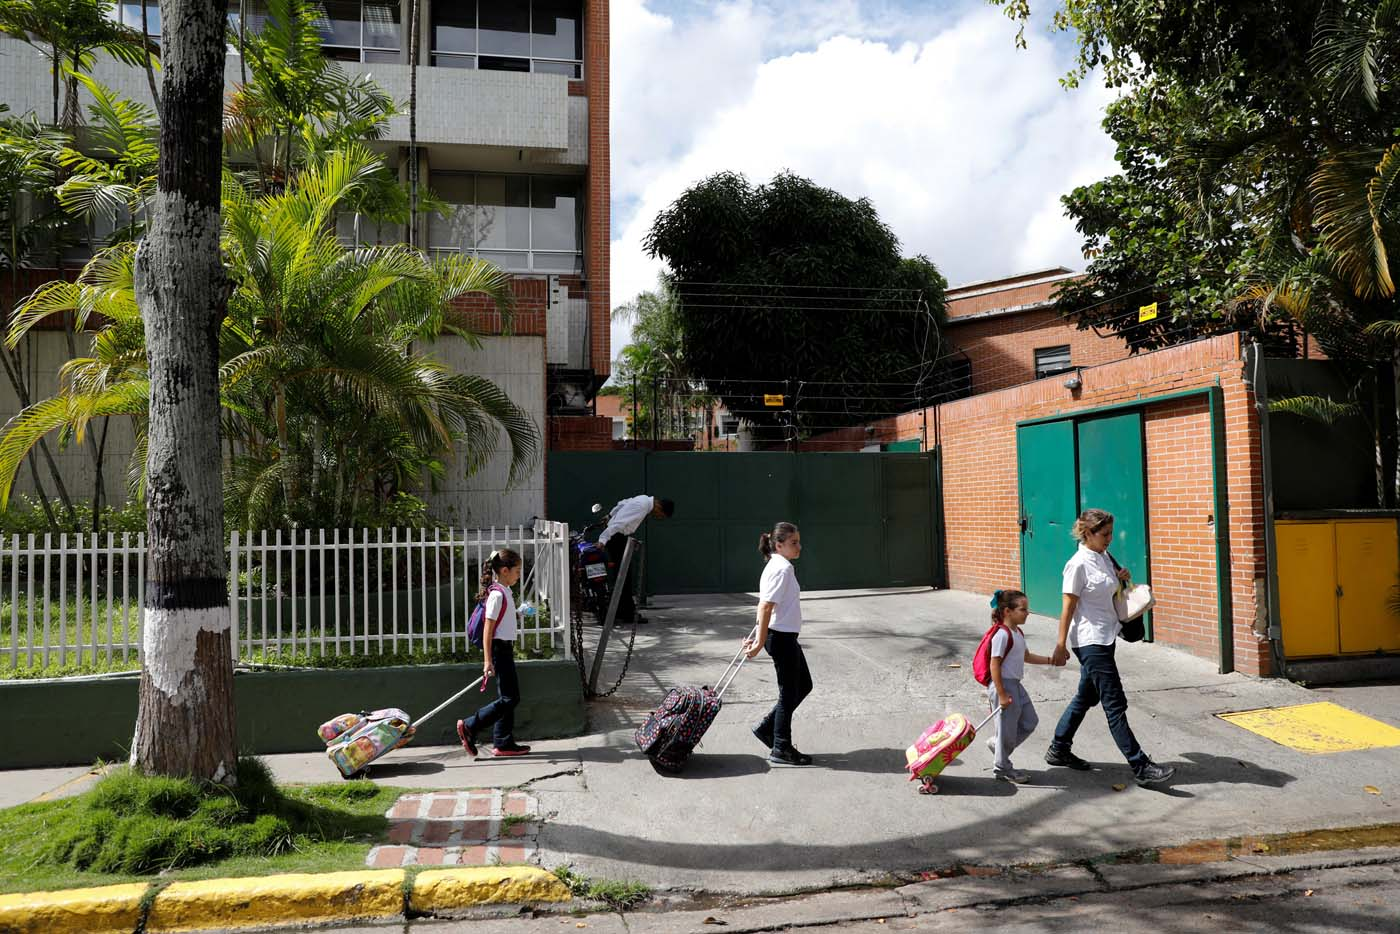 Caribay Valenzuela (R), walks with her daughters (L-R) Carlota, Eloisa and Carmen, after picking them up on the school on a day of protests in Caracas, Venezuela June 19, 2017. Picture taken June 19, 2017. REUTERS/Carlos Garcia Rawlins